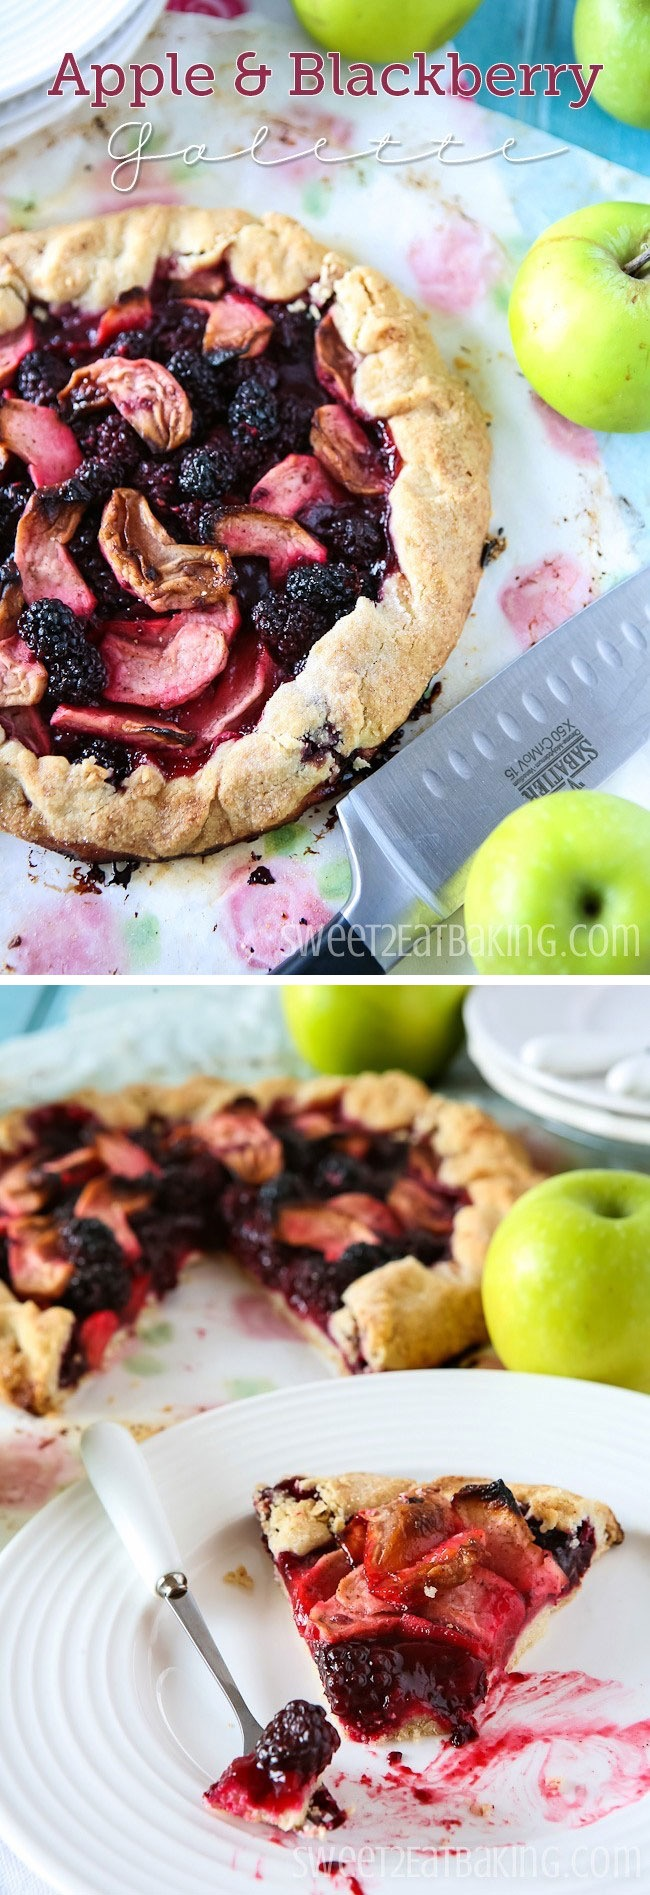 Apple and Blackberry Galette Recipe by Sweet2EatBaking.com | This apple and blackberry galette is a British classic. Sweet blackberries paired with bramley apples makes one of the best flavour combos, and a family favourite.